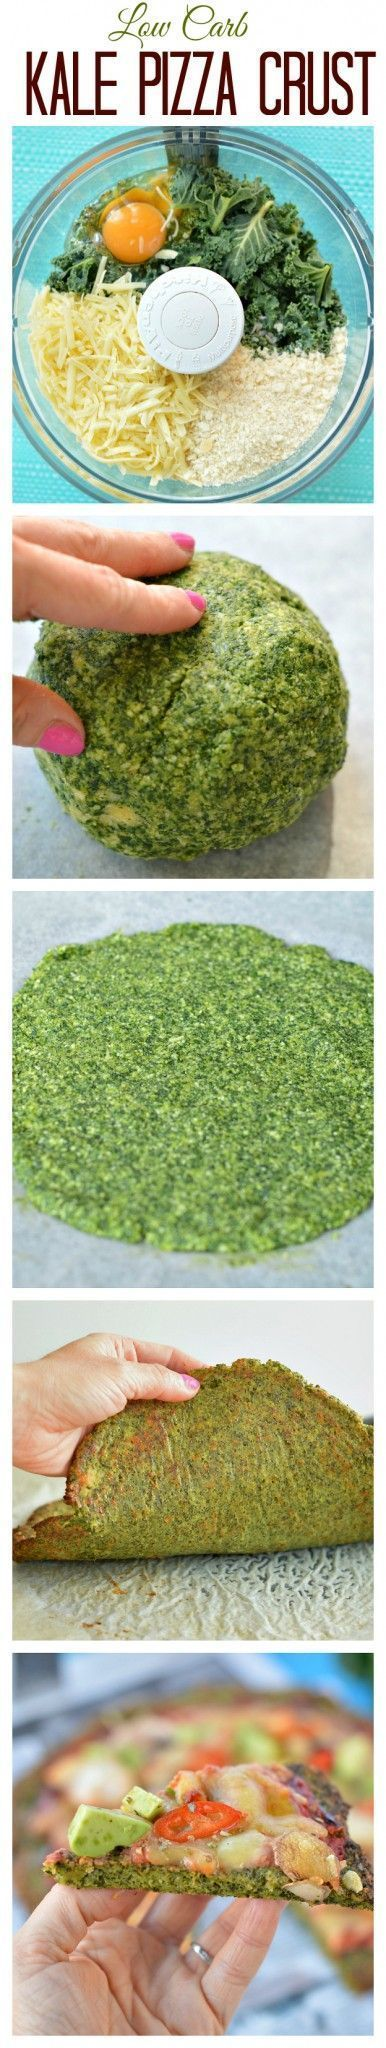 My fav Healthy Pizza Crust ! This Low Carb Kale Pizza Crust is made with only 5 ingredients and take 15 minutes to prepare. #healthy #pizza